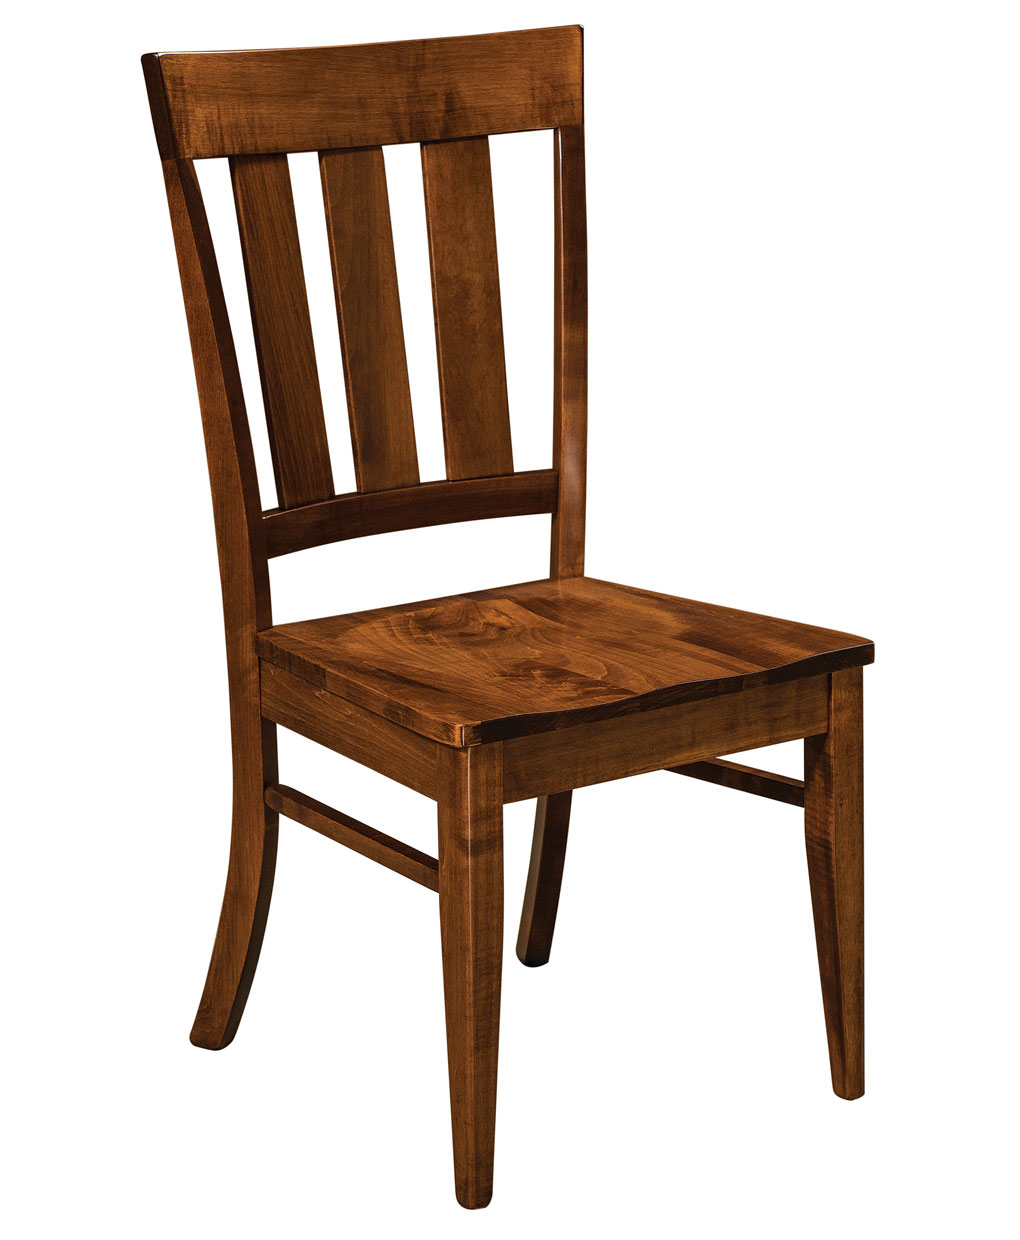 Glenmont Chair